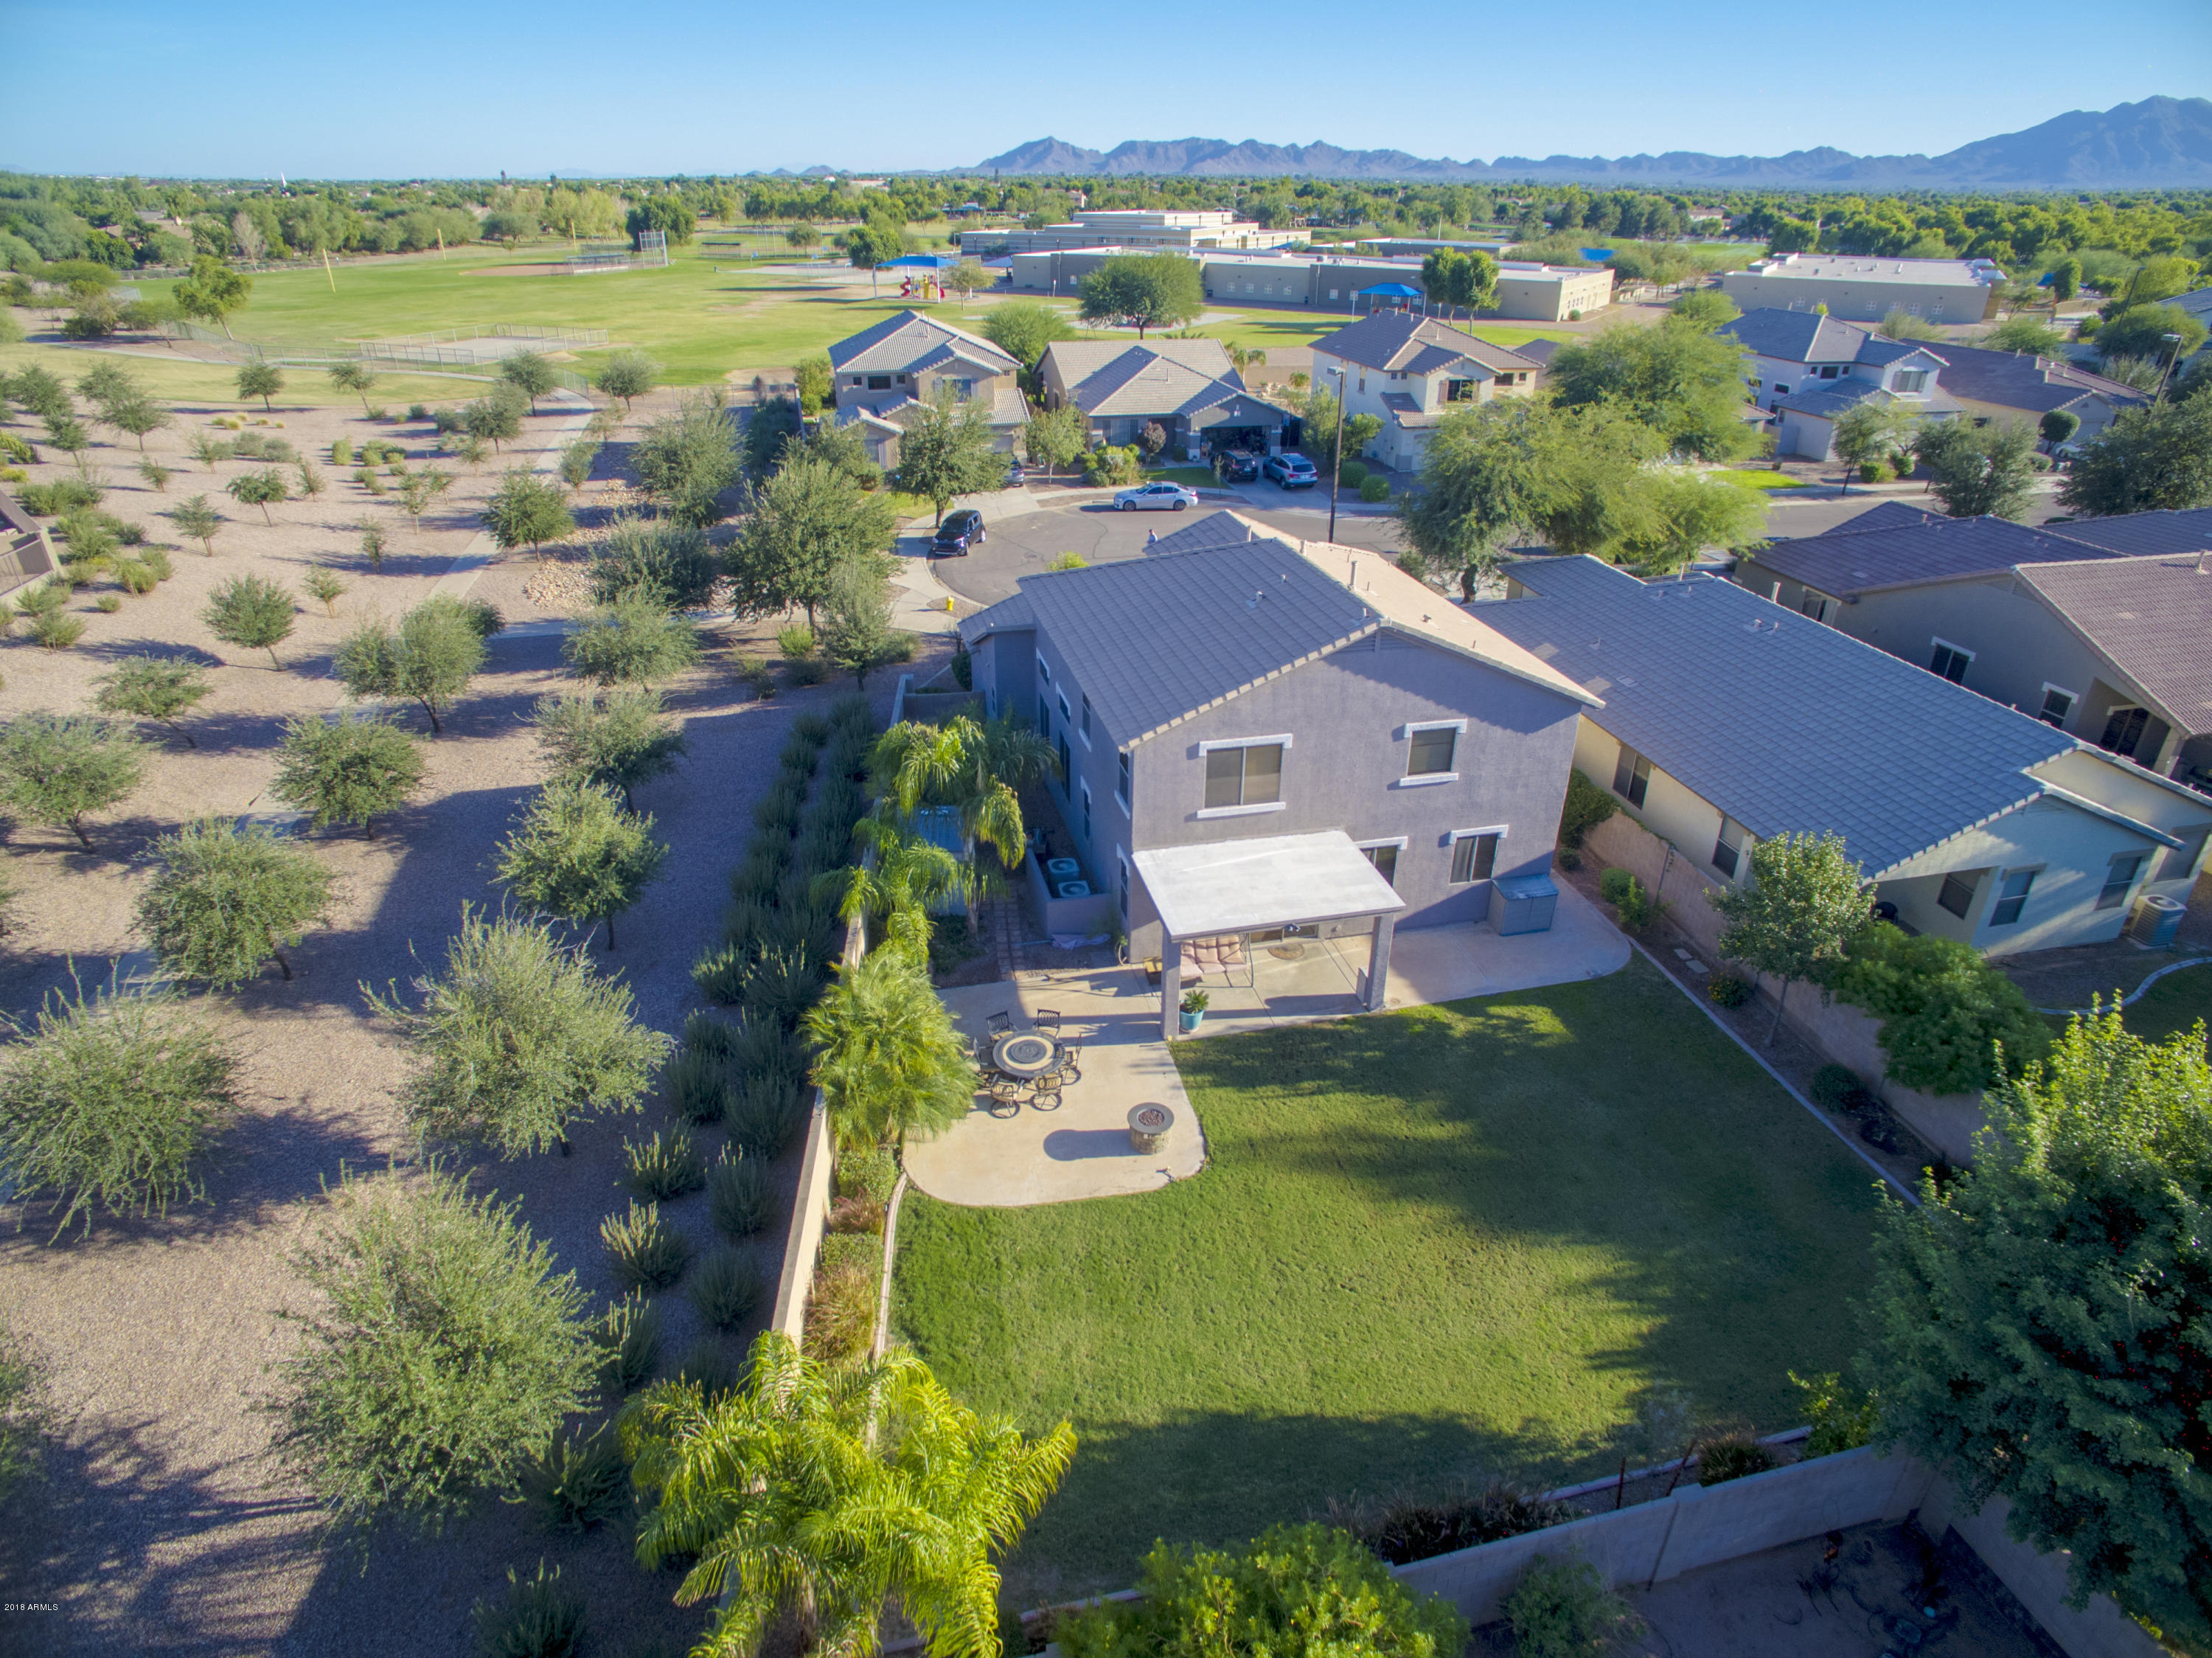 MLS 5848374 4276 E CLOUDBURST Court, Gilbert, AZ Gilbert AZ Power Ranch